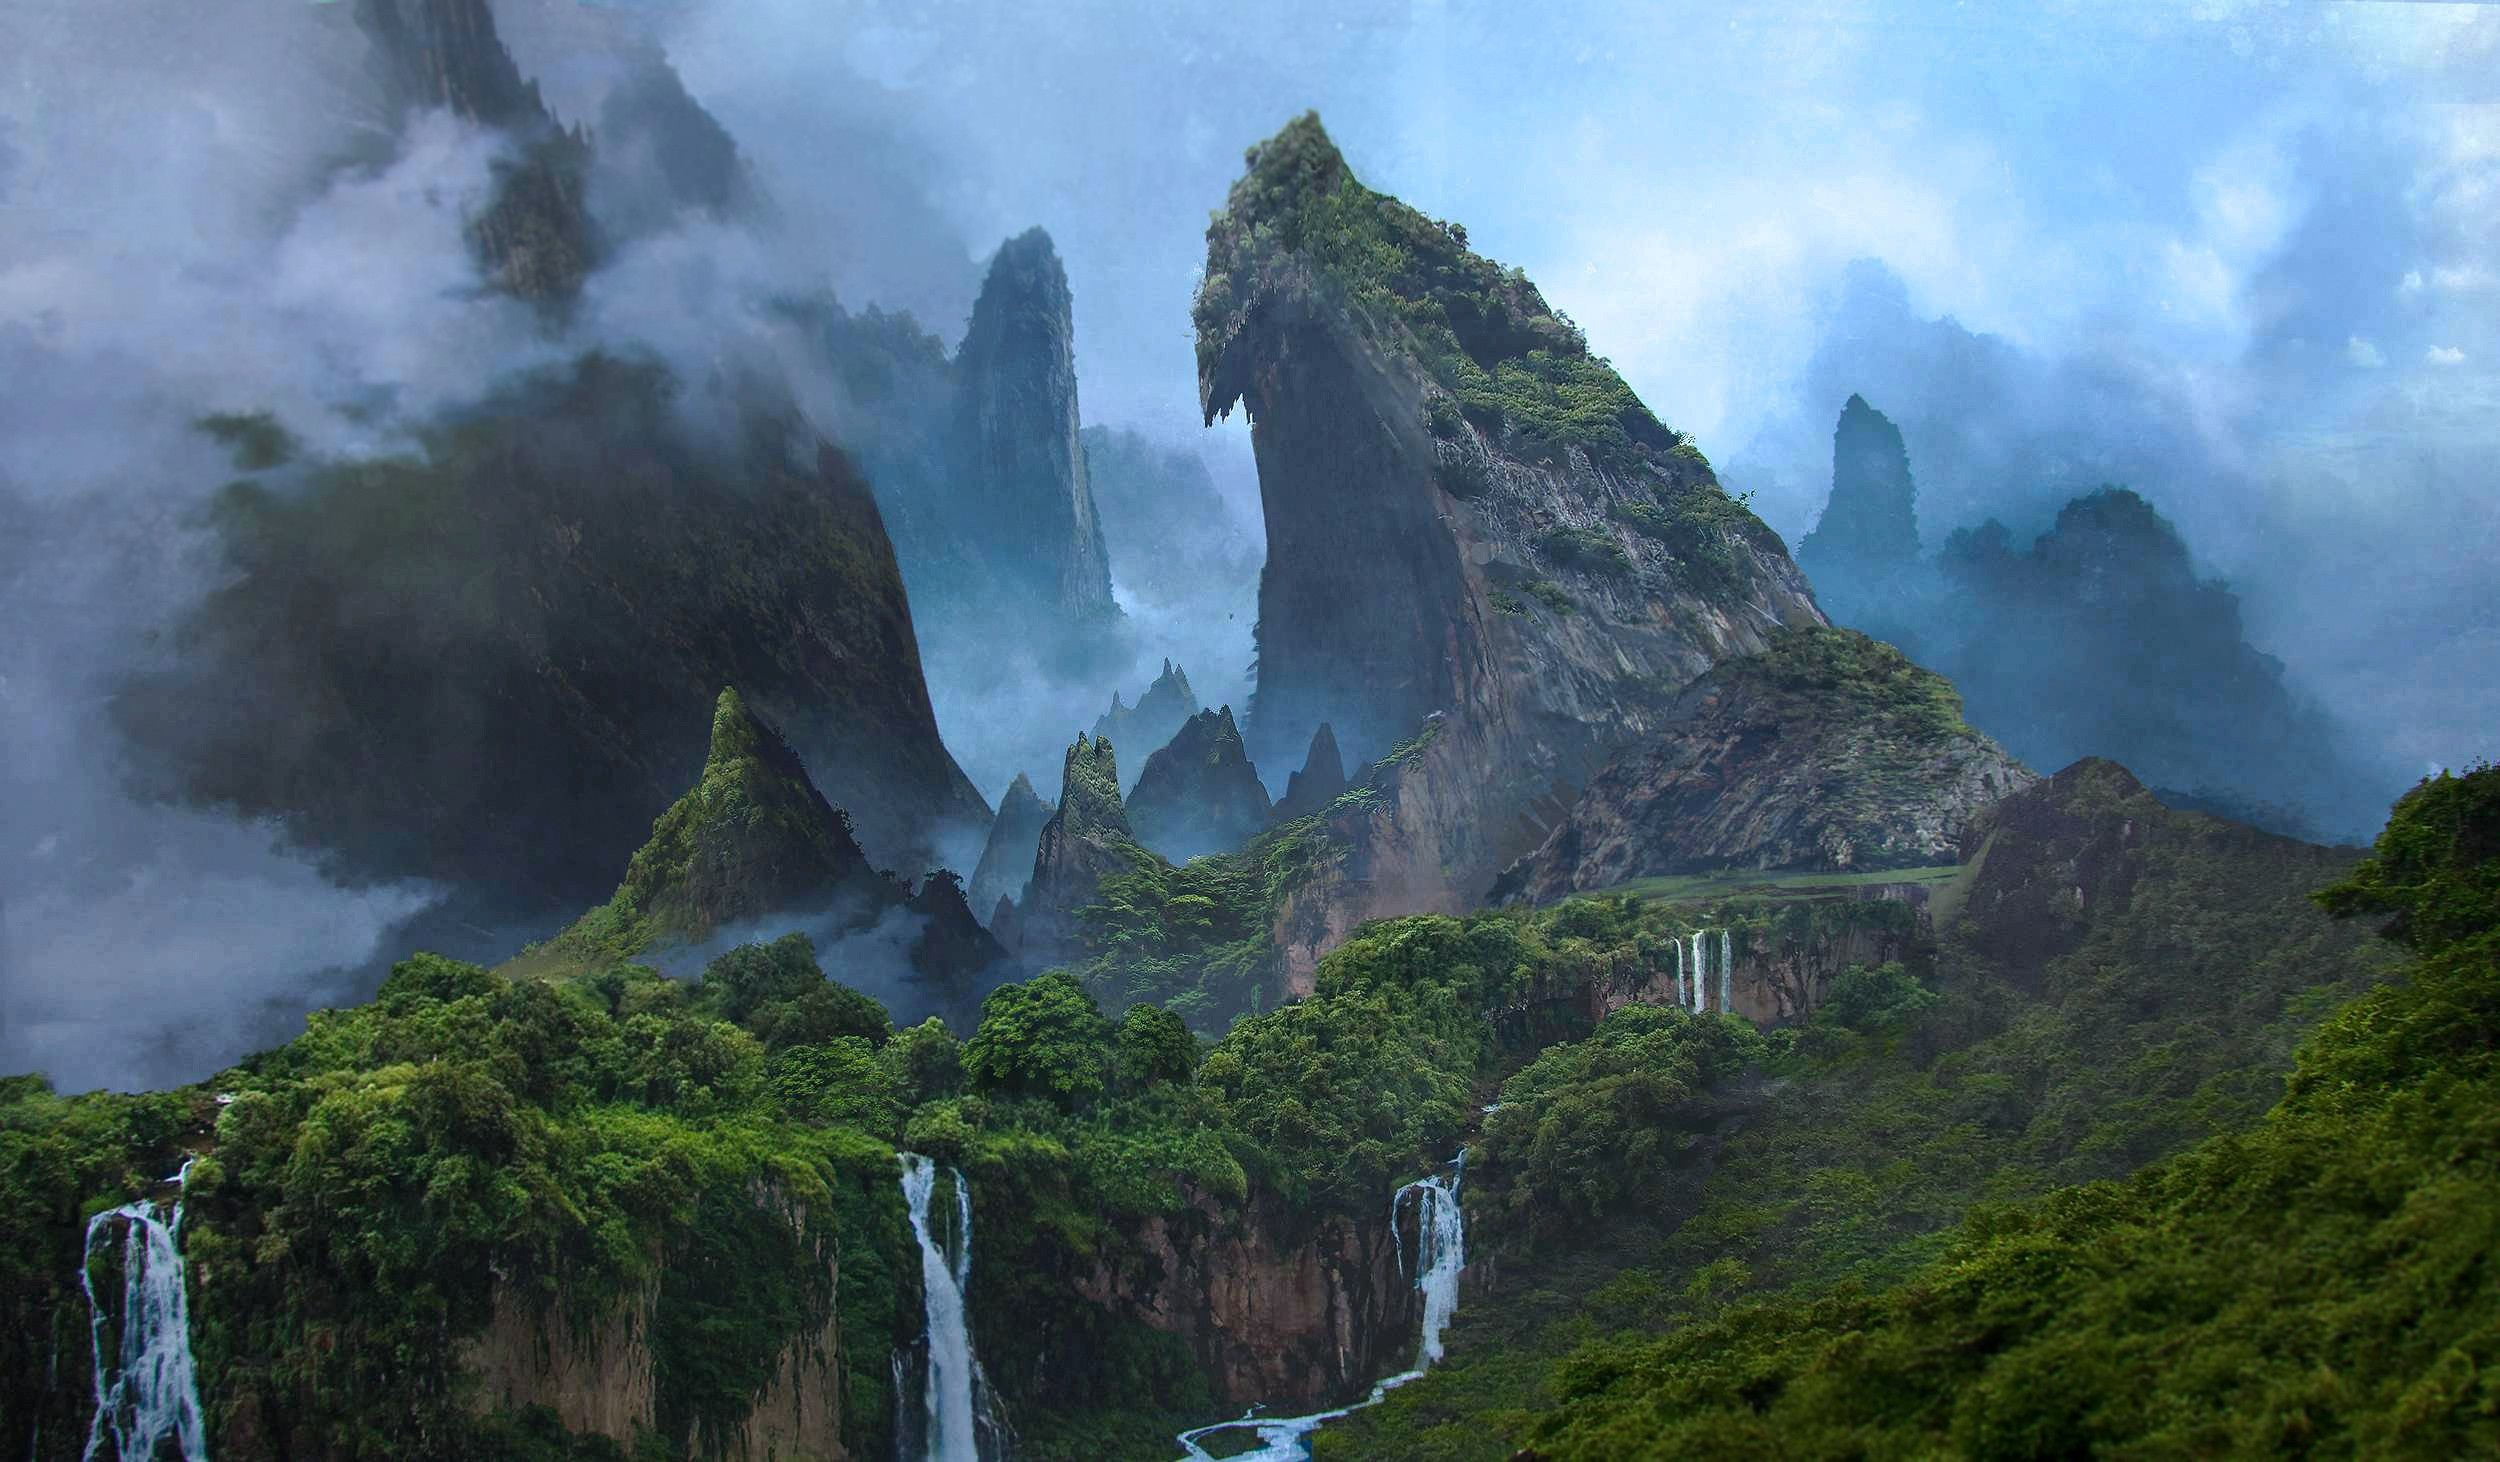 Res: 2500x1462, scenic wallpapers, jungle wallpapers, forest wallpapers, woods wallpapers,  trees wallpapers, mountains wallpapers, hills wallpapers, cliffs wallpapers,  ...